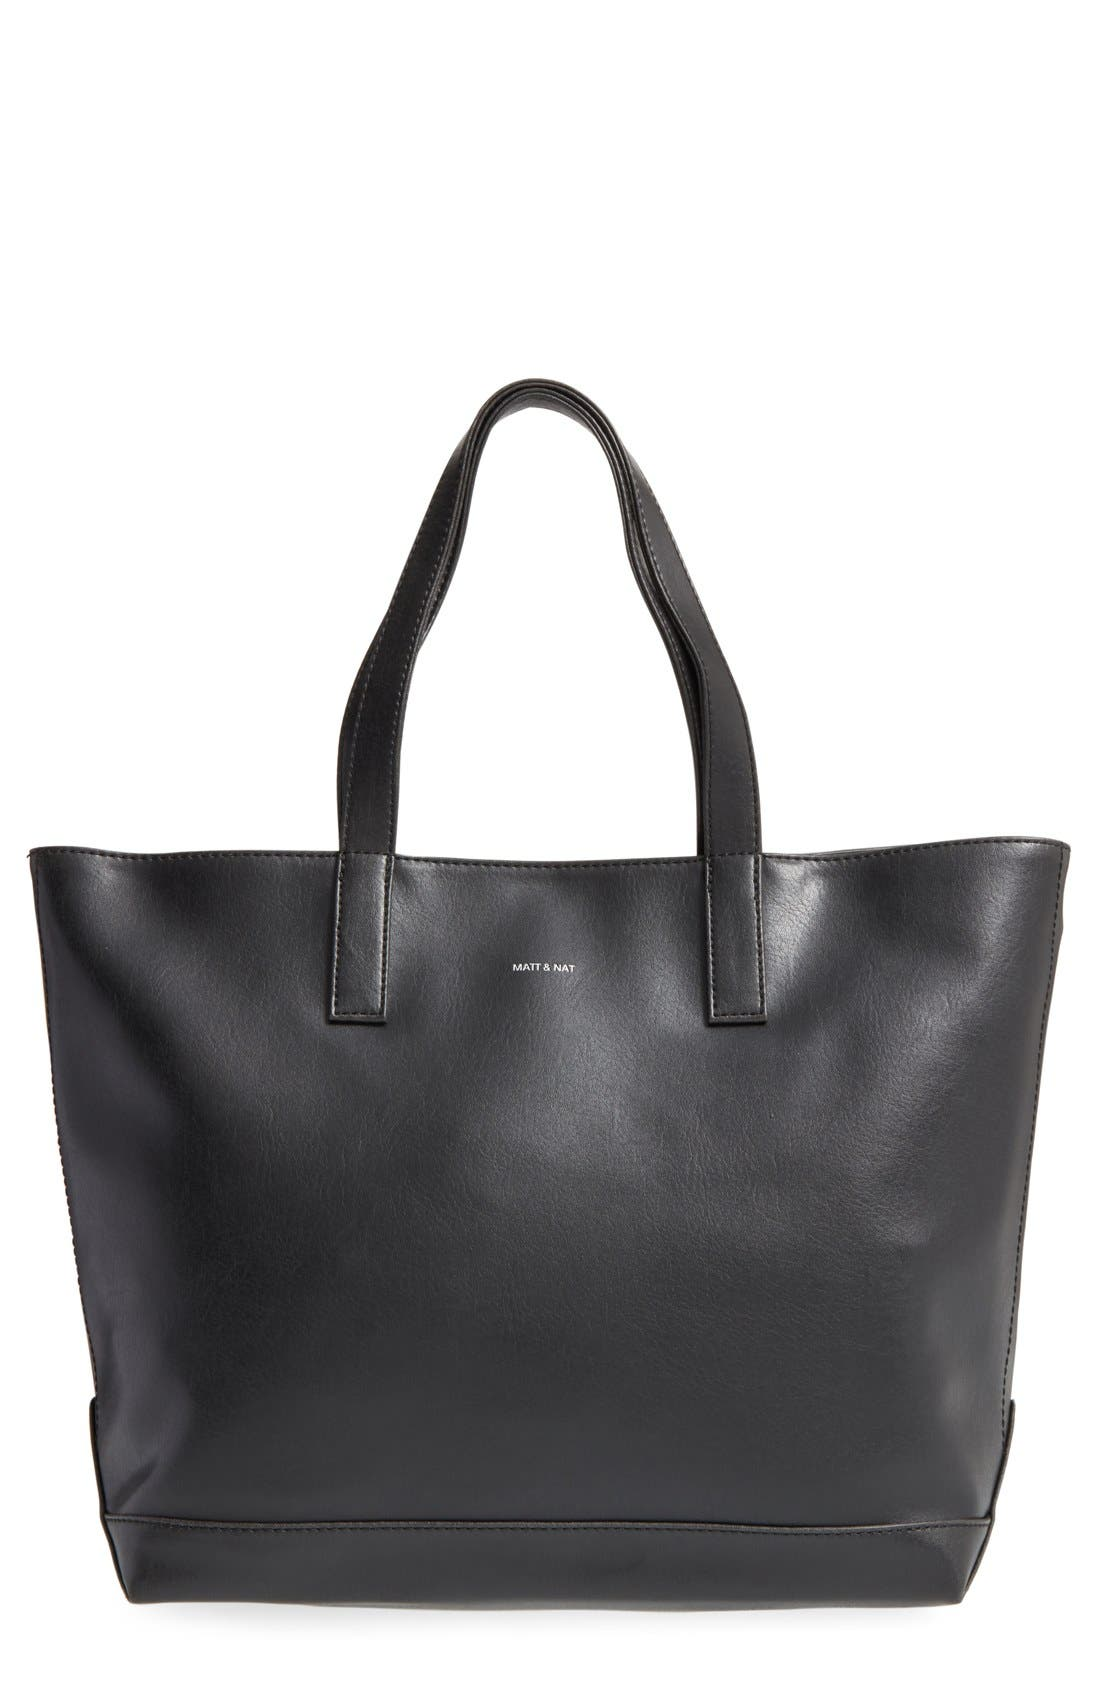 Alternate Image 1 Selected - Matt & Nat 'Schlepp' Faux Leather Tote